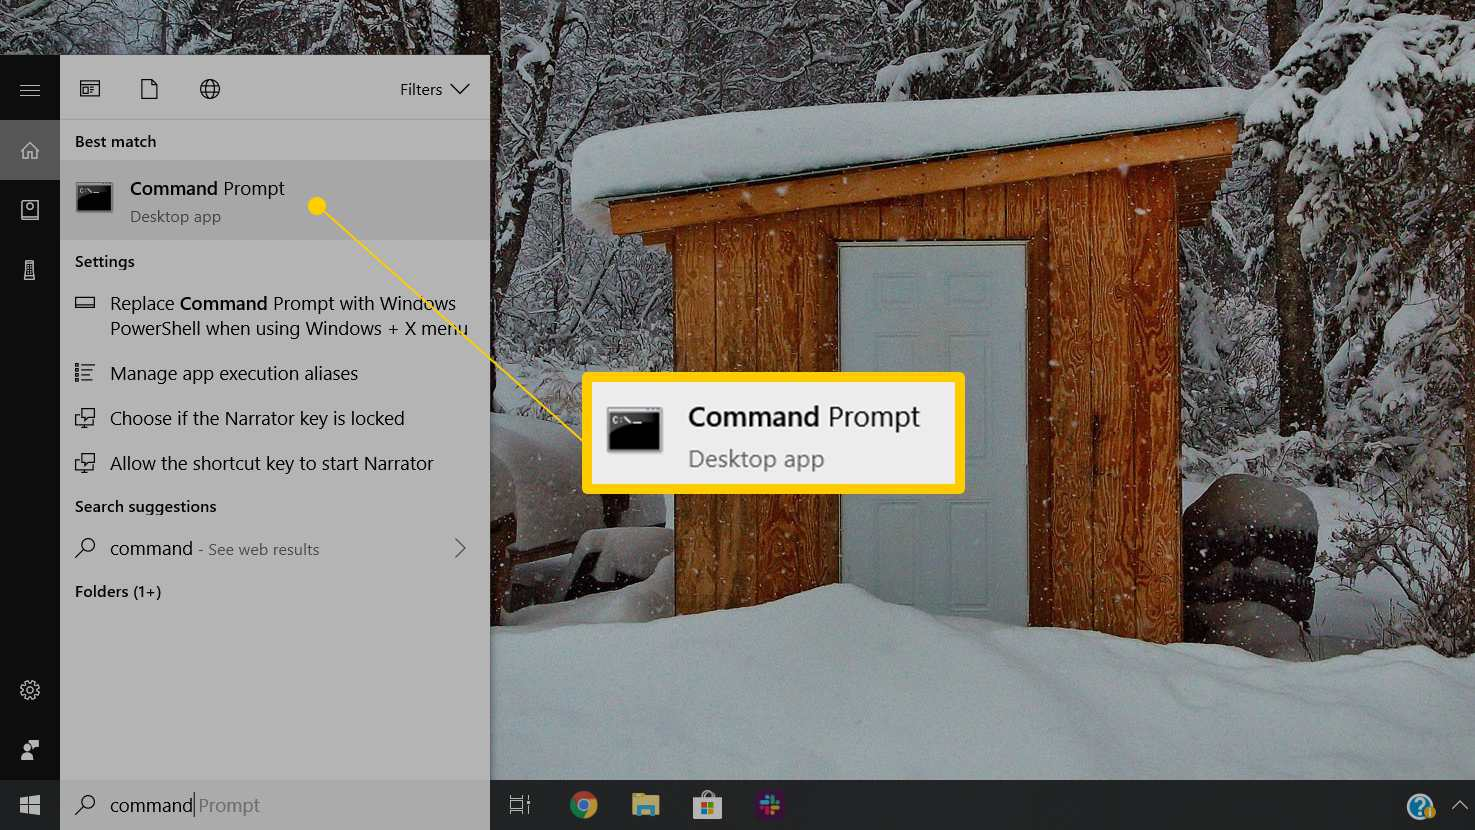 Command Prompt app launch icon in Windows 10